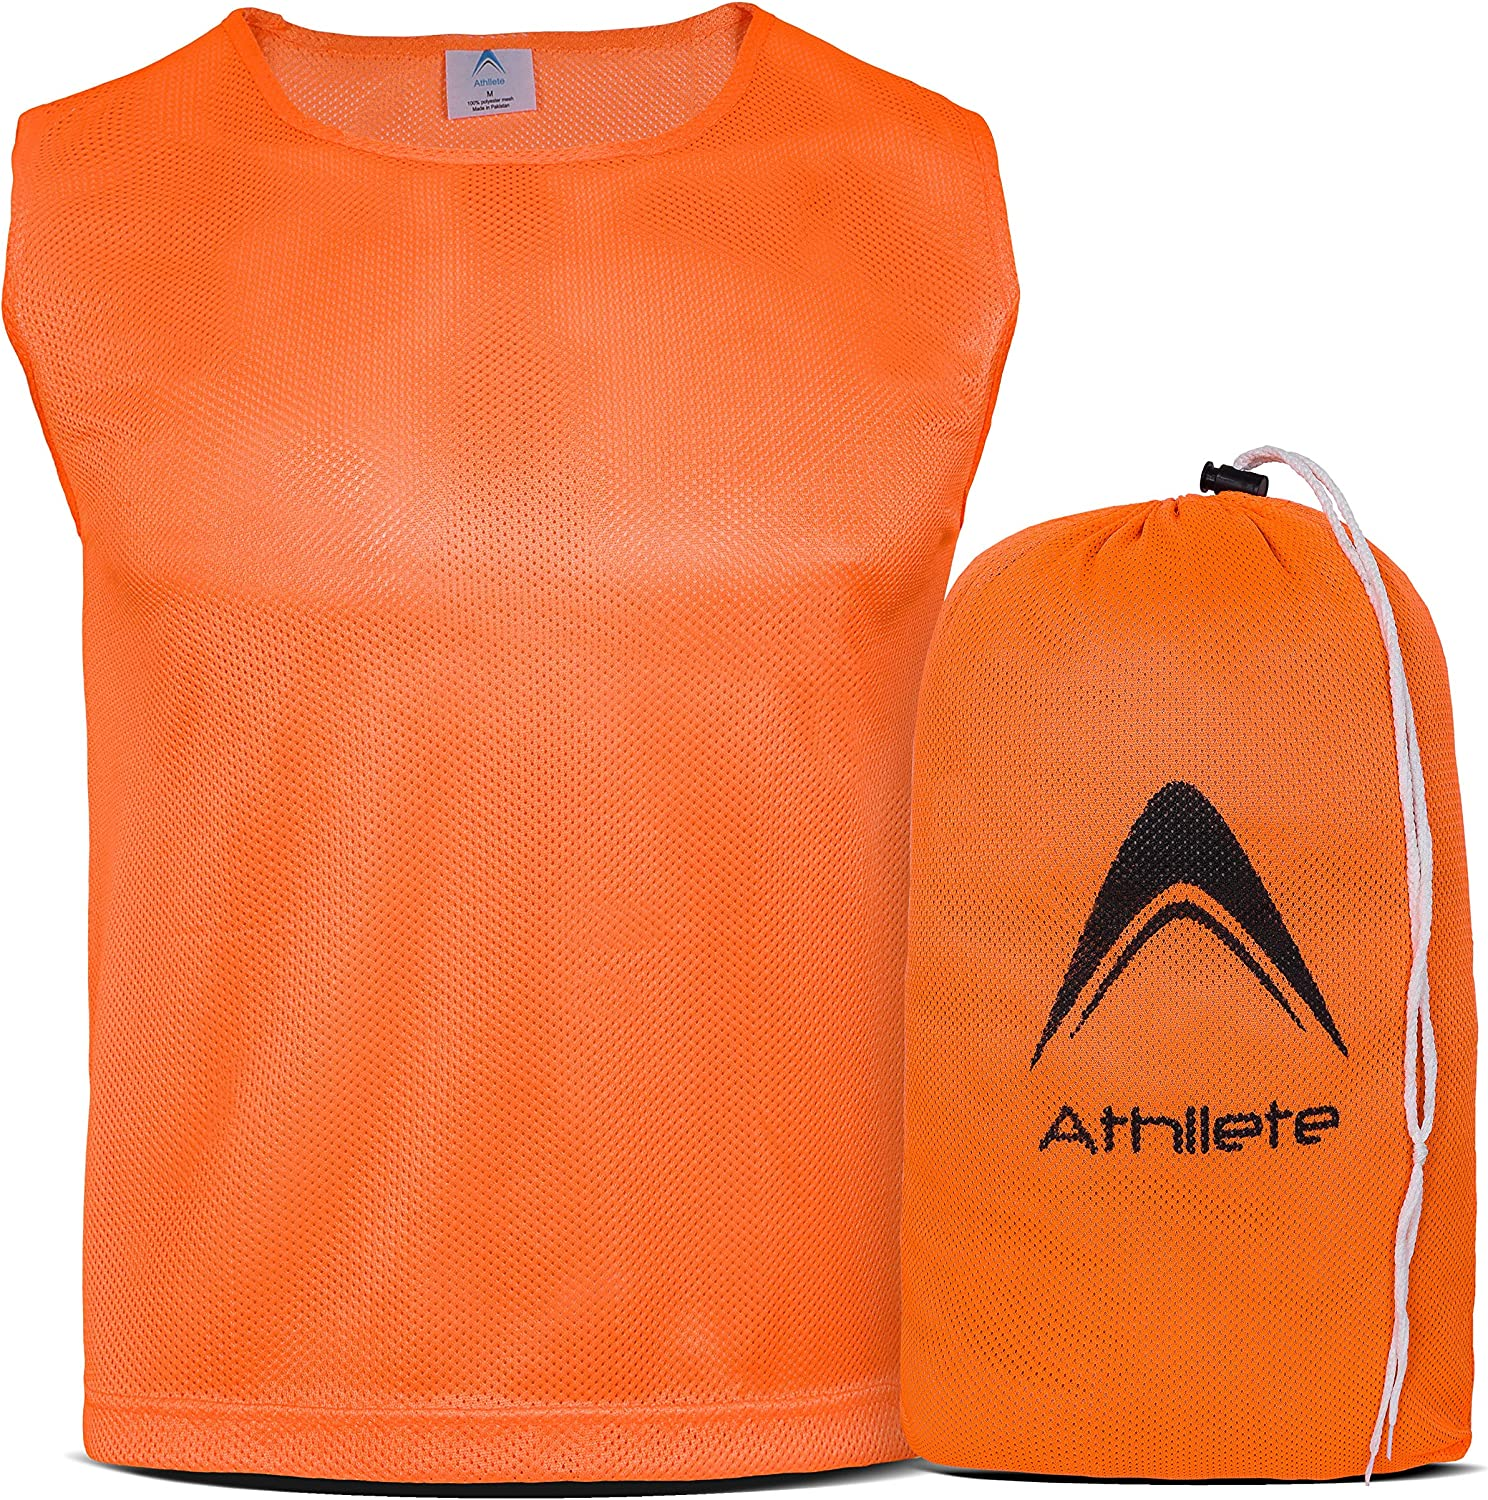 Athllete DURAMESH Set of 6 - Scrimmage Vest/Pinnies/Team Practice Jerseys with Free Carry Bag. Sizes for Children Youth Adult and Adult XL : Sports & Outdoors